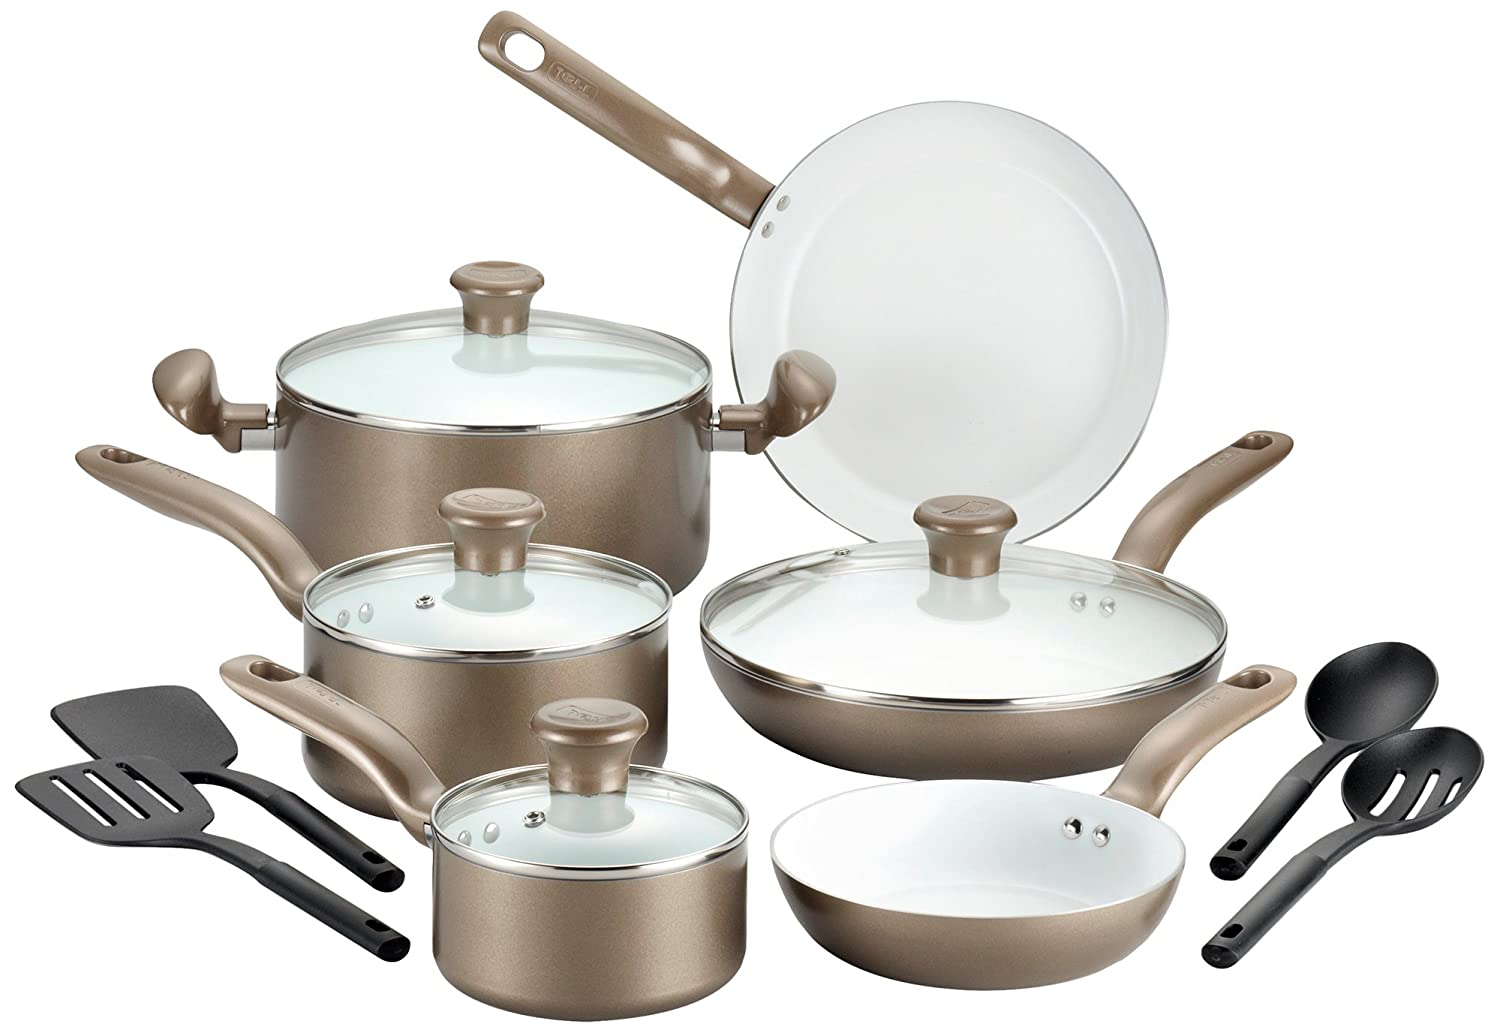 T Fal Initiatives Ceramic Nonstick Cookware Sets Ebay